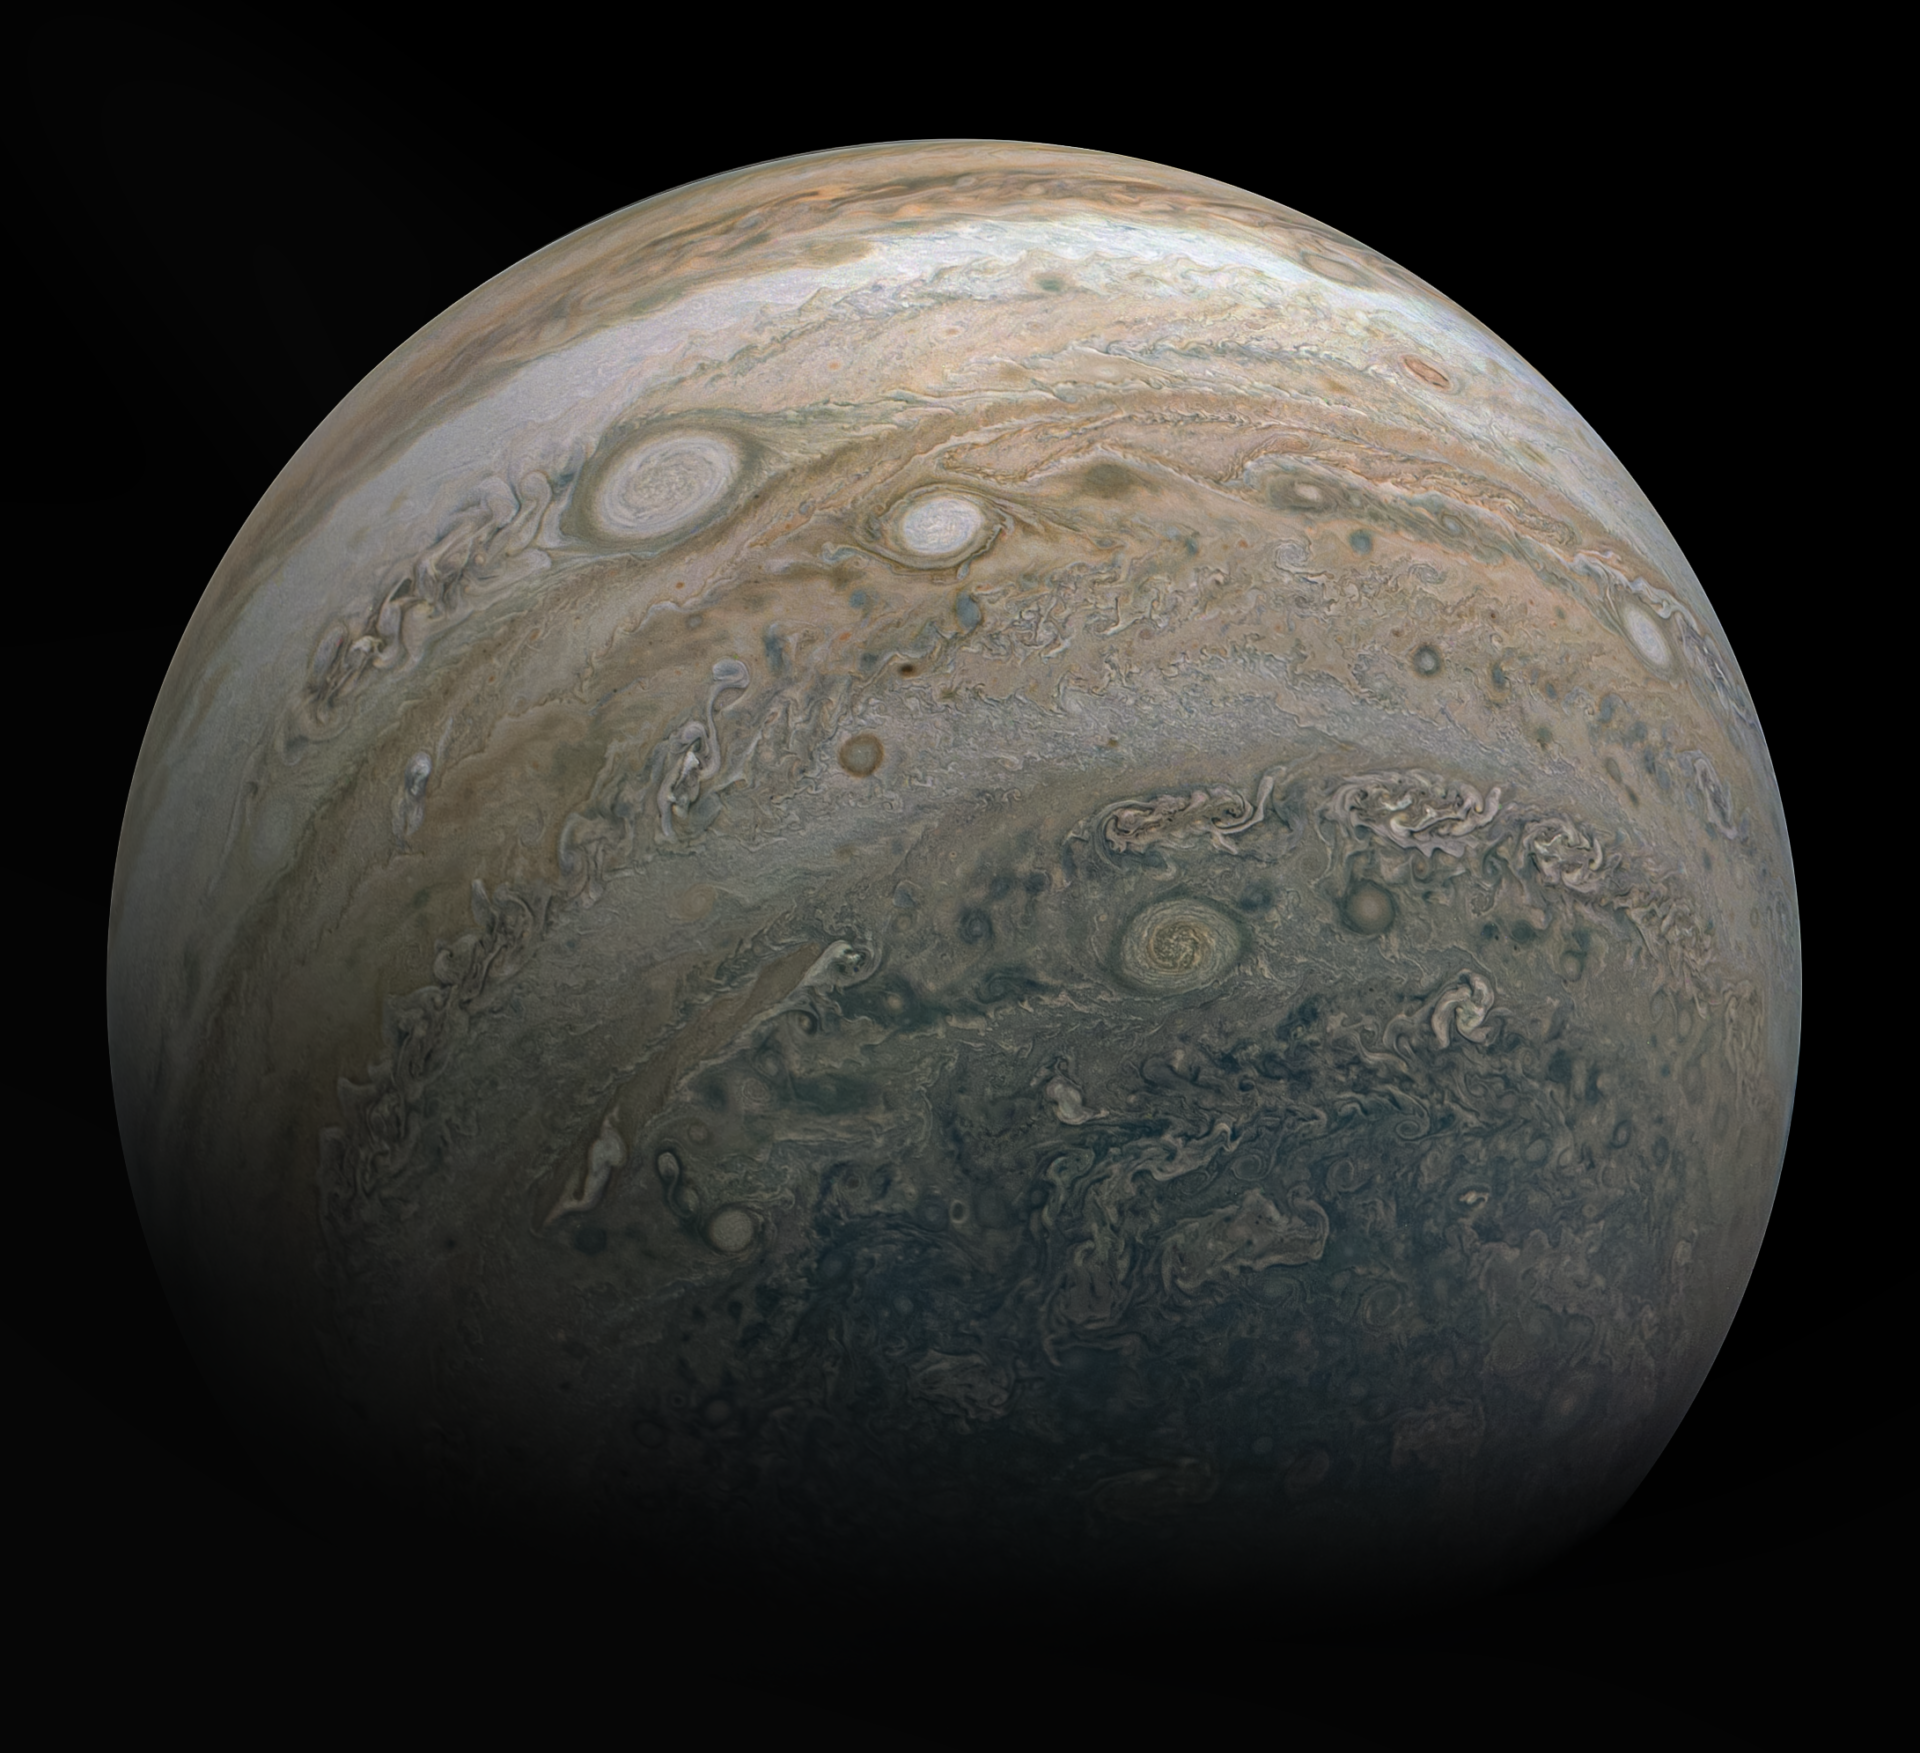 Jupiter image, showing many small storms